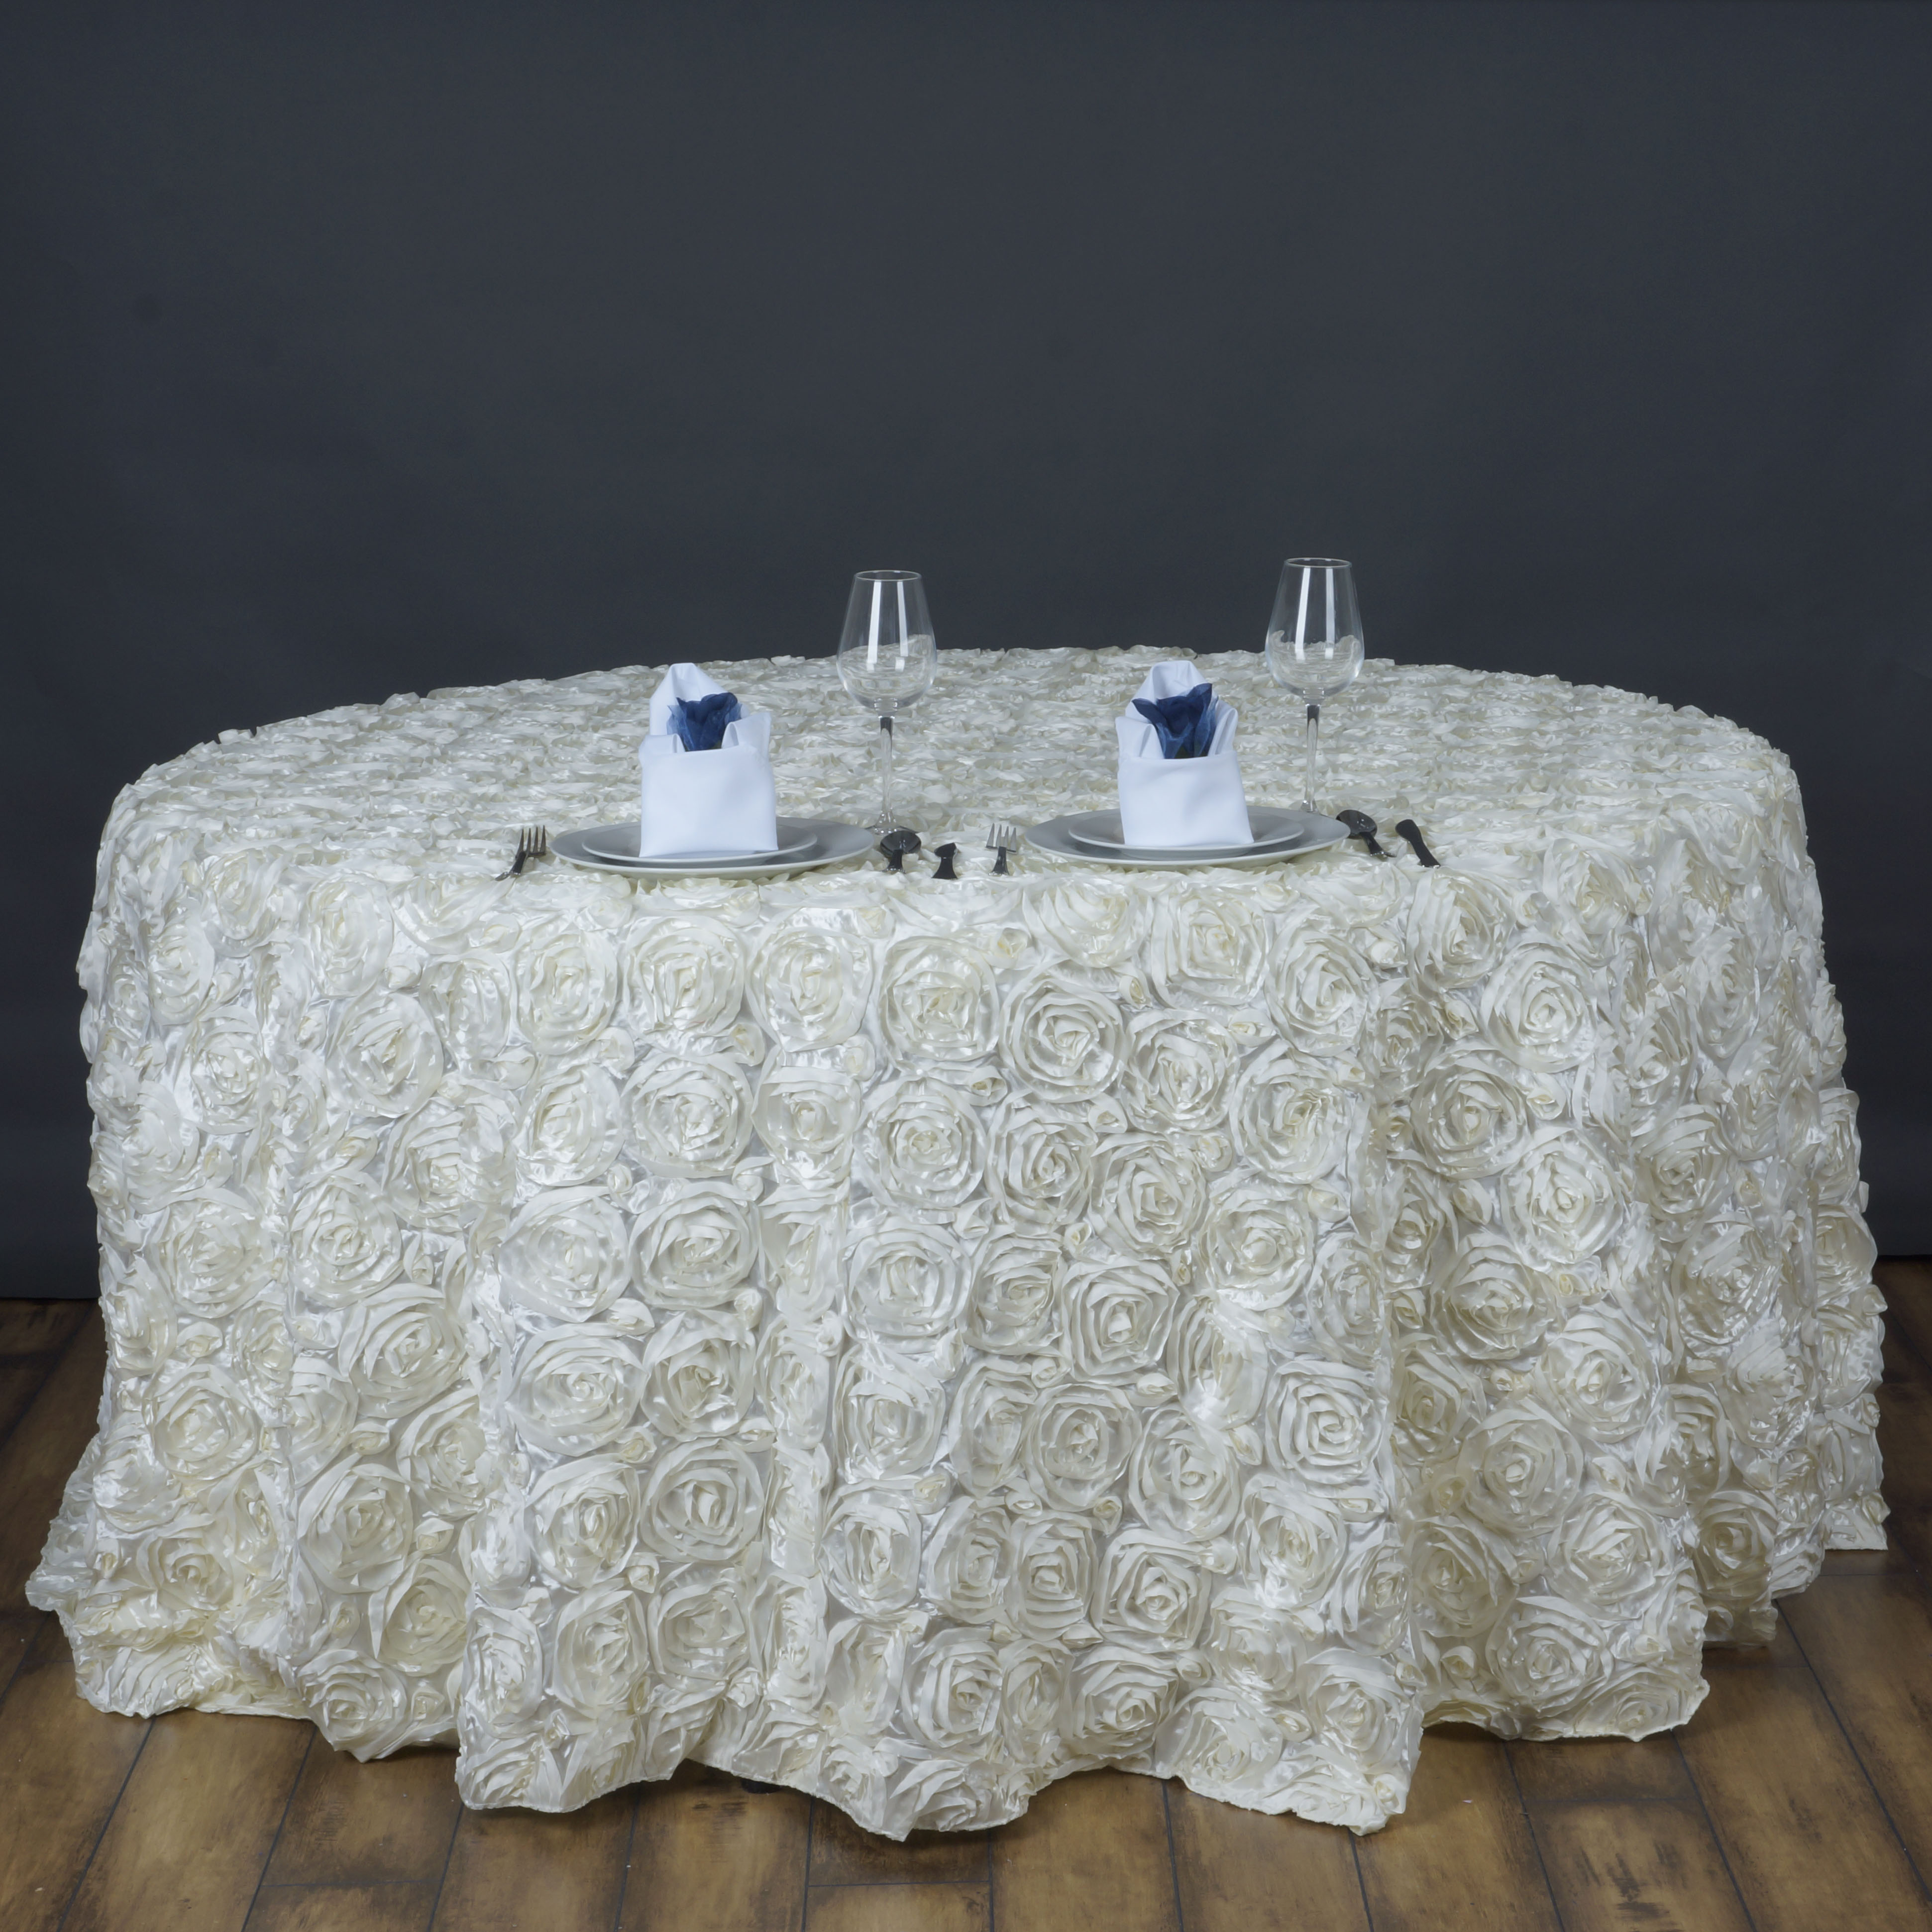 120 034 Rosette Rose Pattern Round Tablecloths For